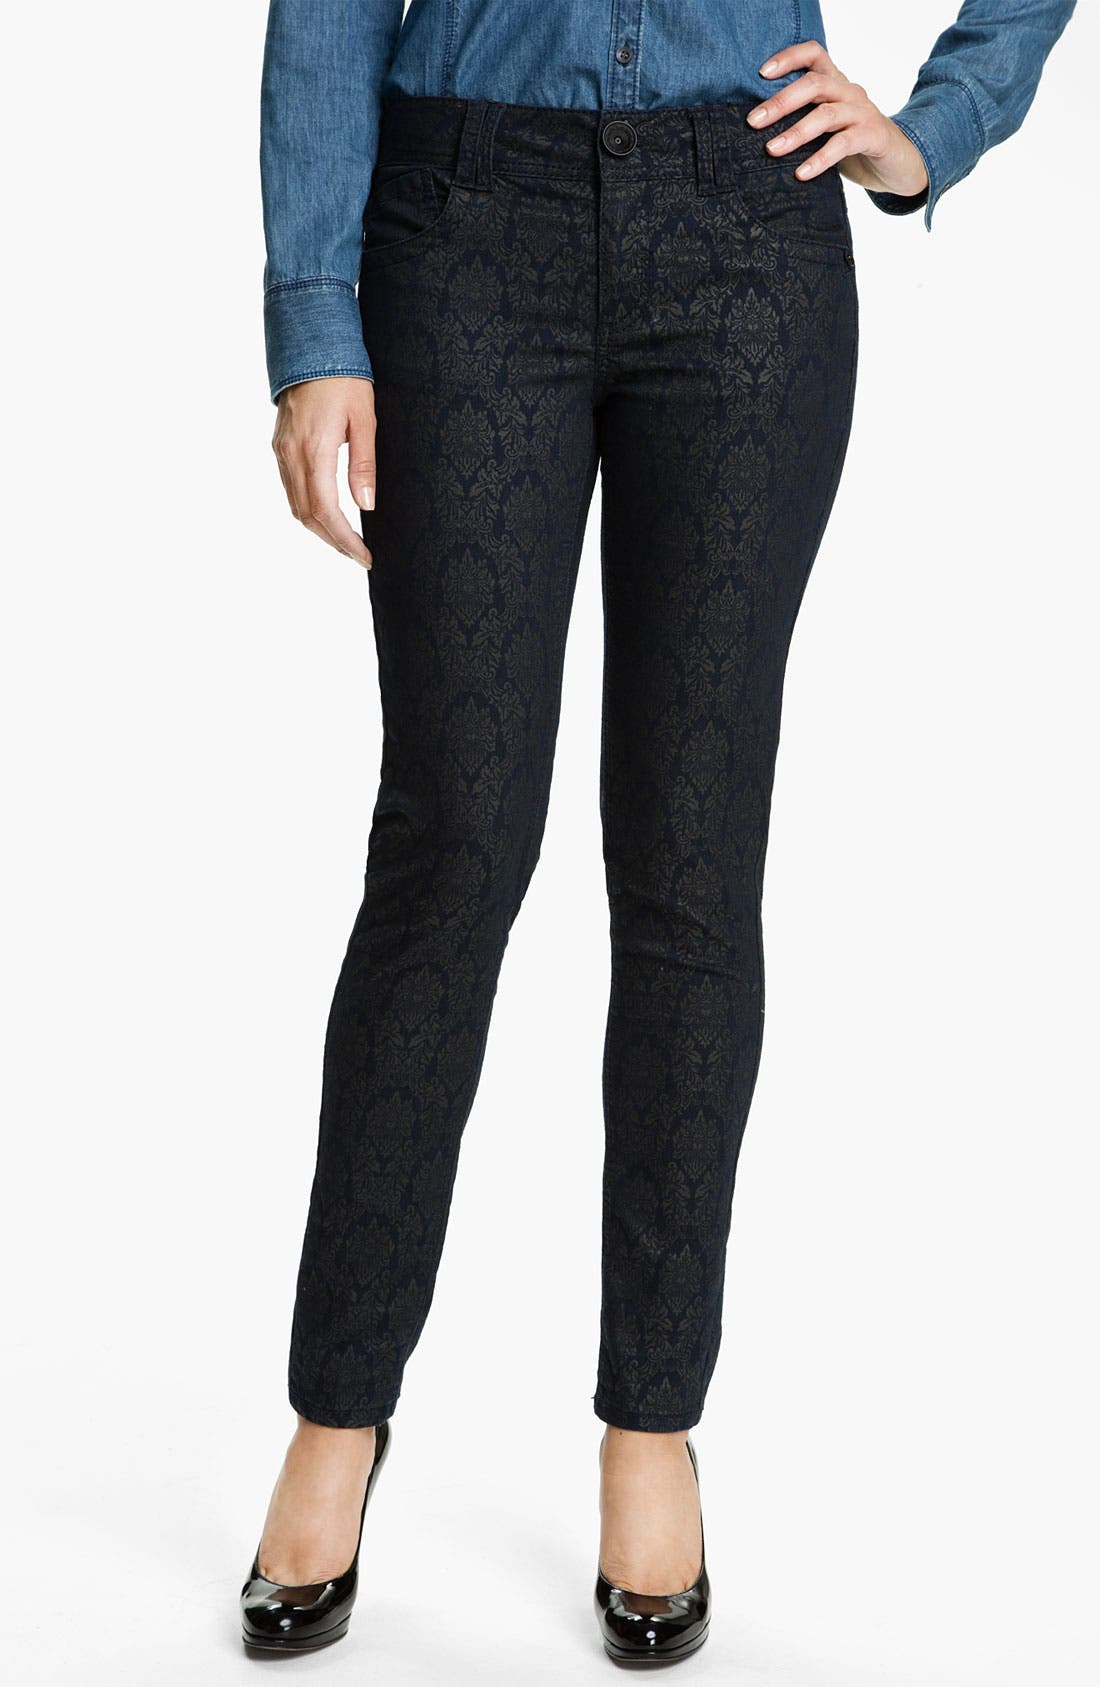 Alternate Image 1 Selected - Wit & Wisdom Brocade Print Skinny Jeans (Indigo) (Nordstrom Exclusive)